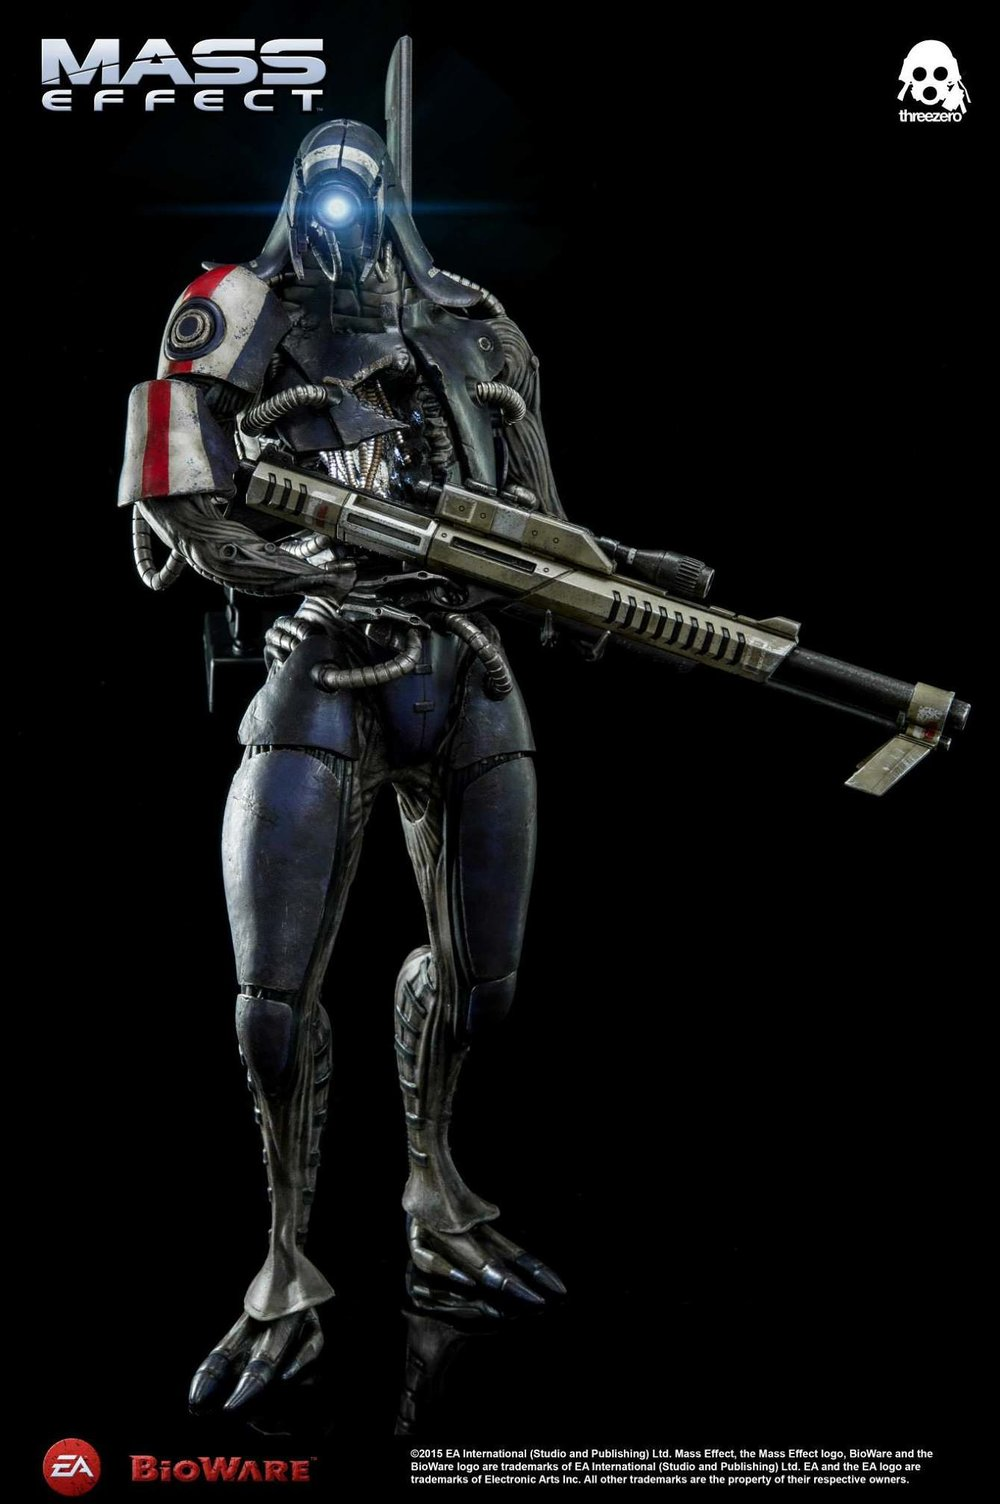 ThreeZero-Bioware-video-game-Legion-Mass-Effect-figure-19_1340_c.jpg